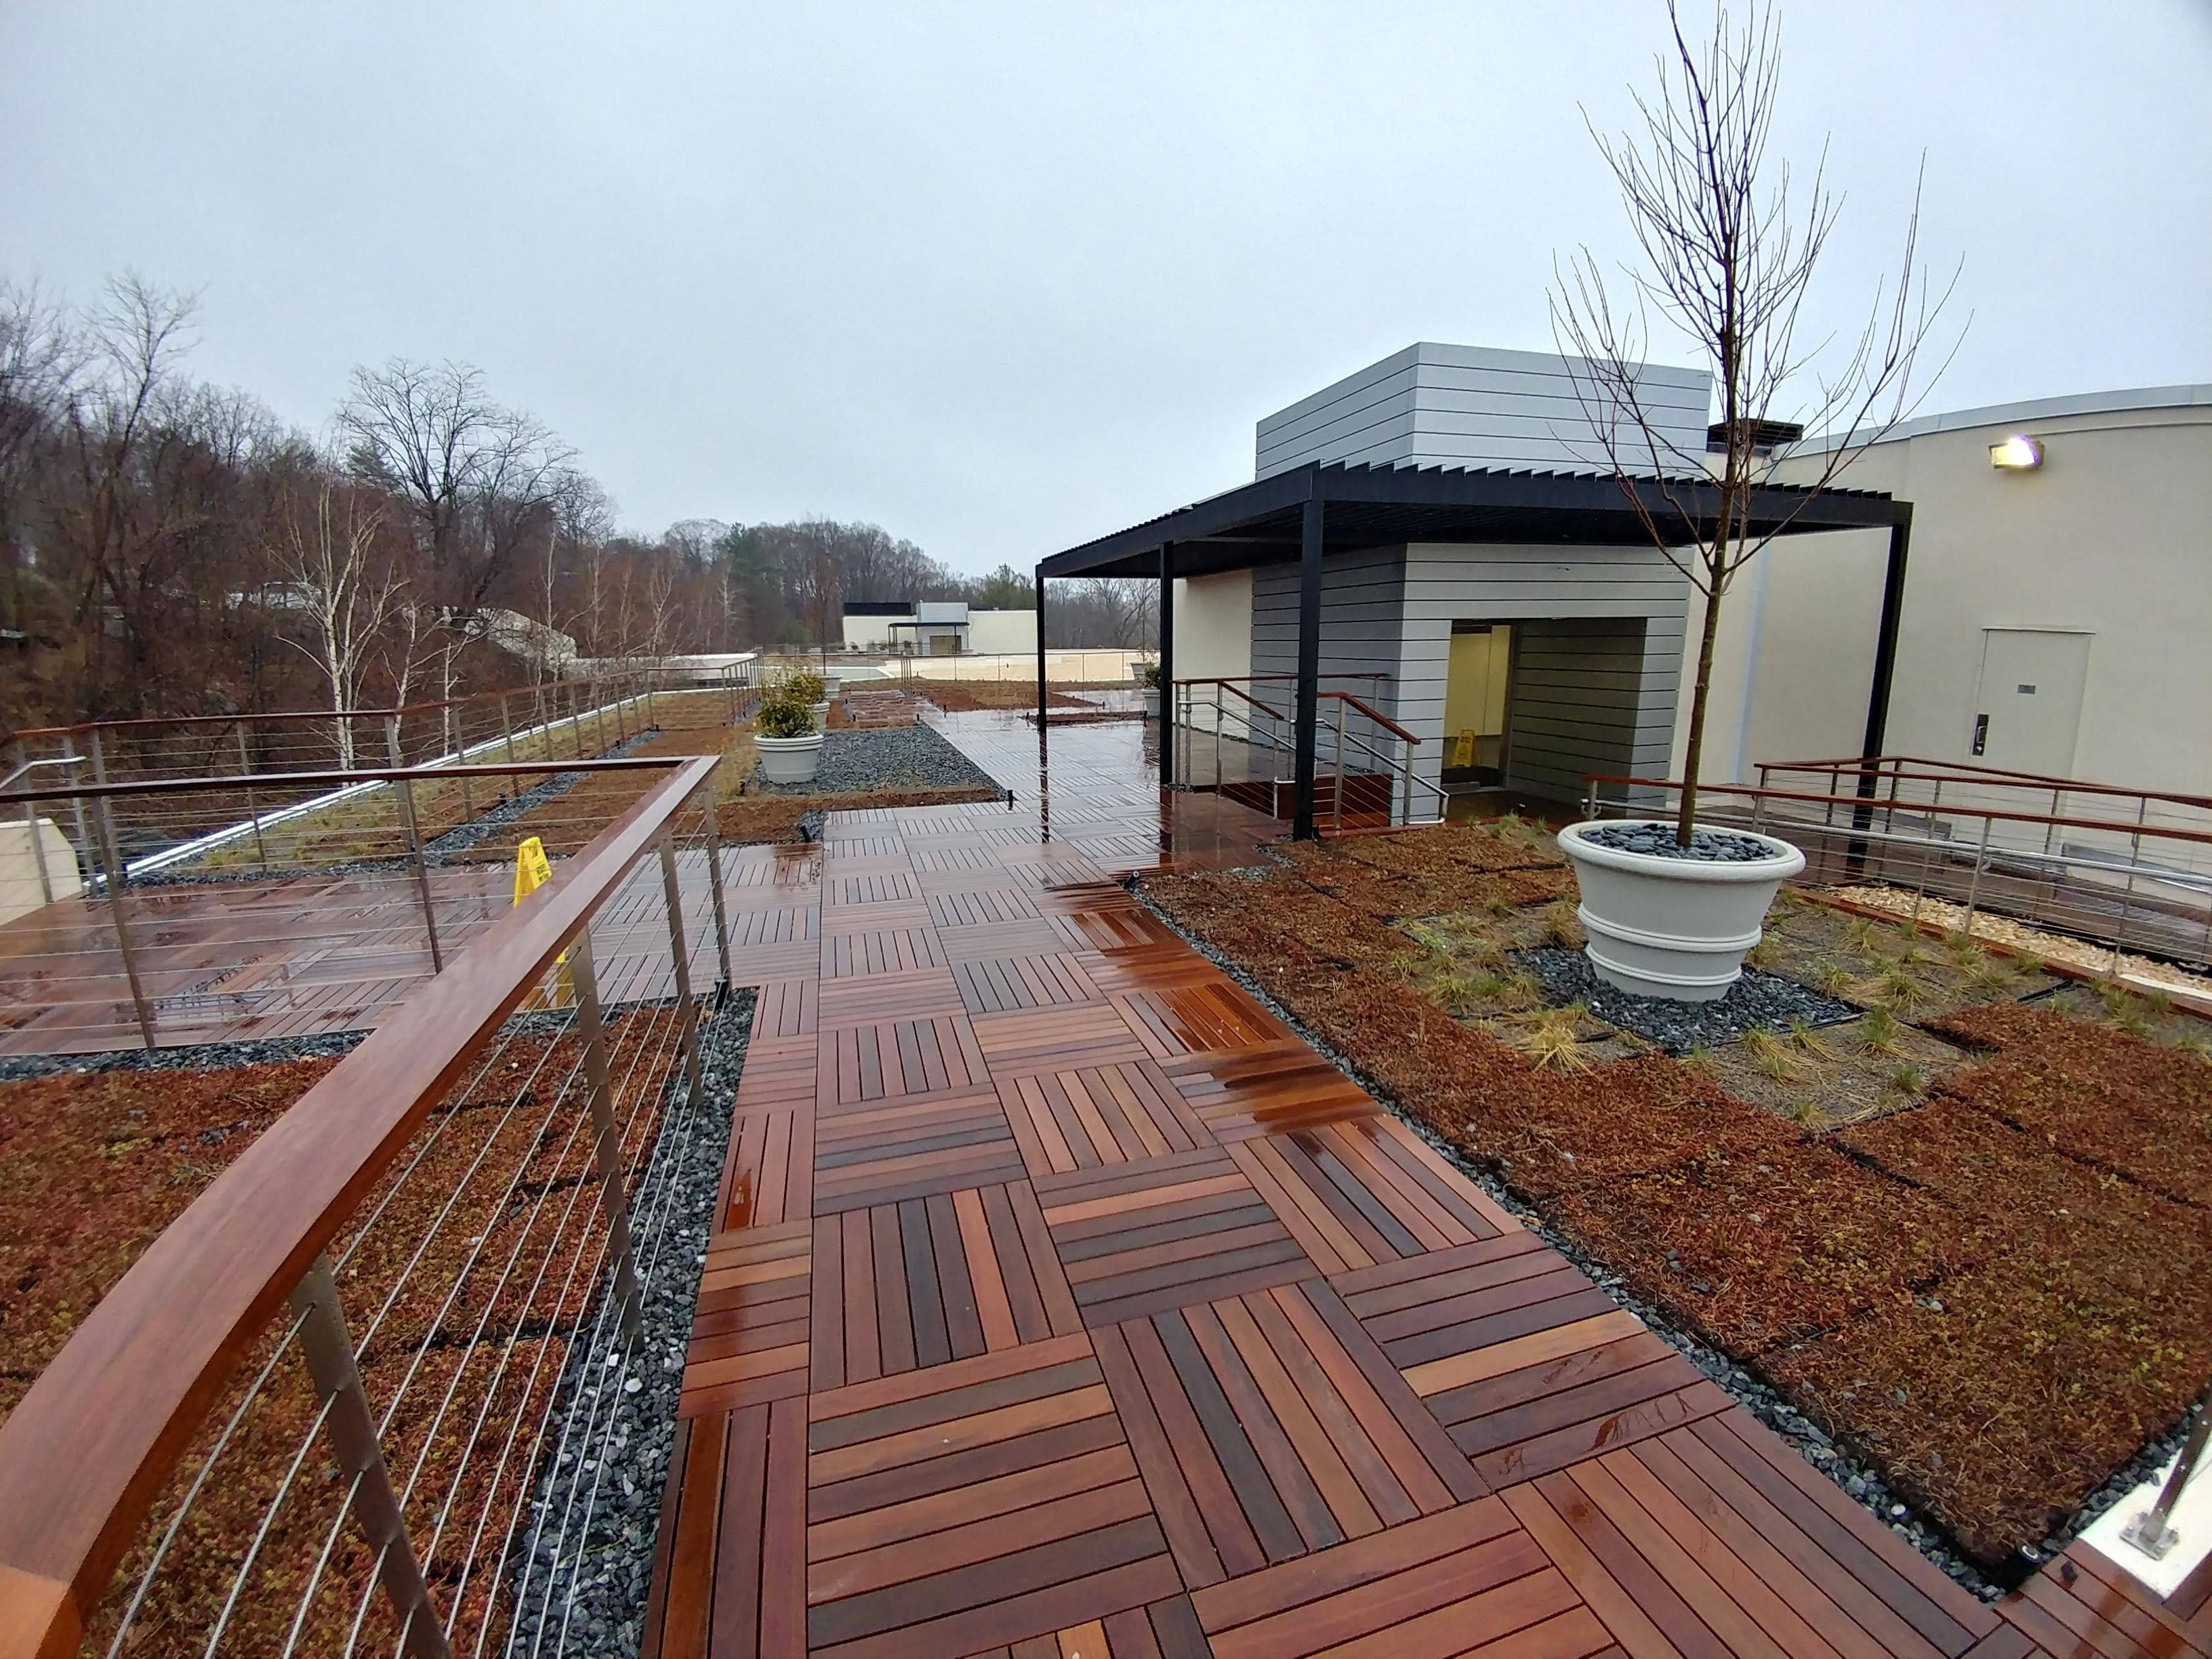 Office Building Green Roof With Garden Areas and Pavers